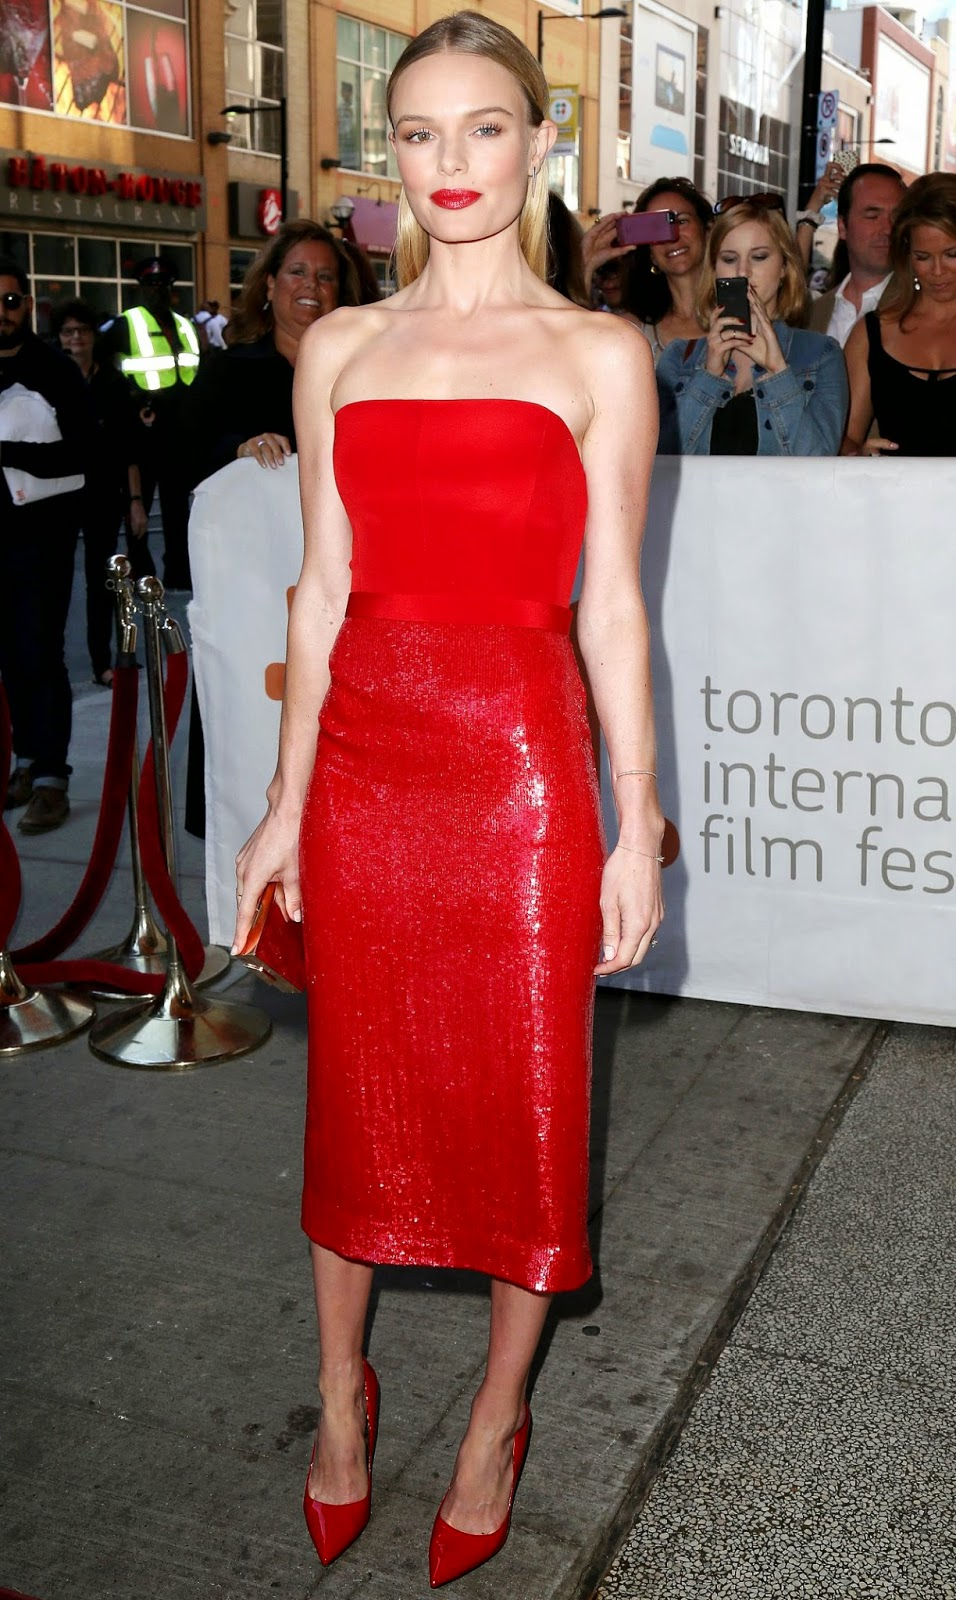 Kate Bosworth sizzles in a strapless red BOSS dress at the 'Still Alice' Toronto International Film Festival premiere